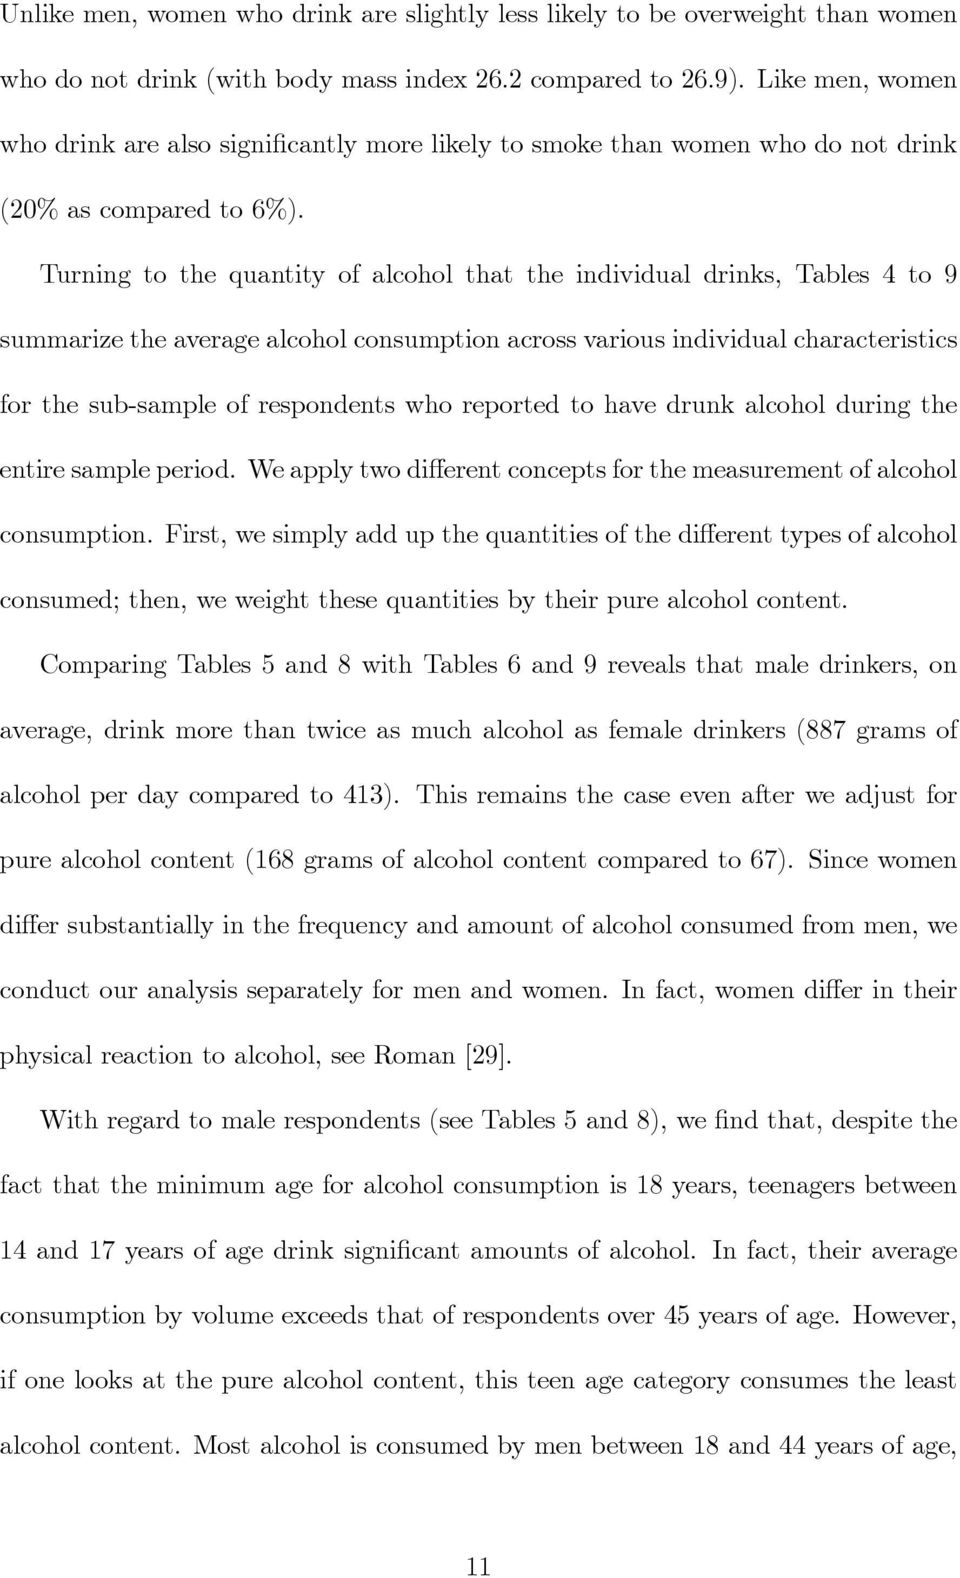 Turning to the quantity of alcohol that the individual drinks, Tables 4 to 9 summarize the average alcohol consumption across various individual characteristics for the sub-sample of respondents who